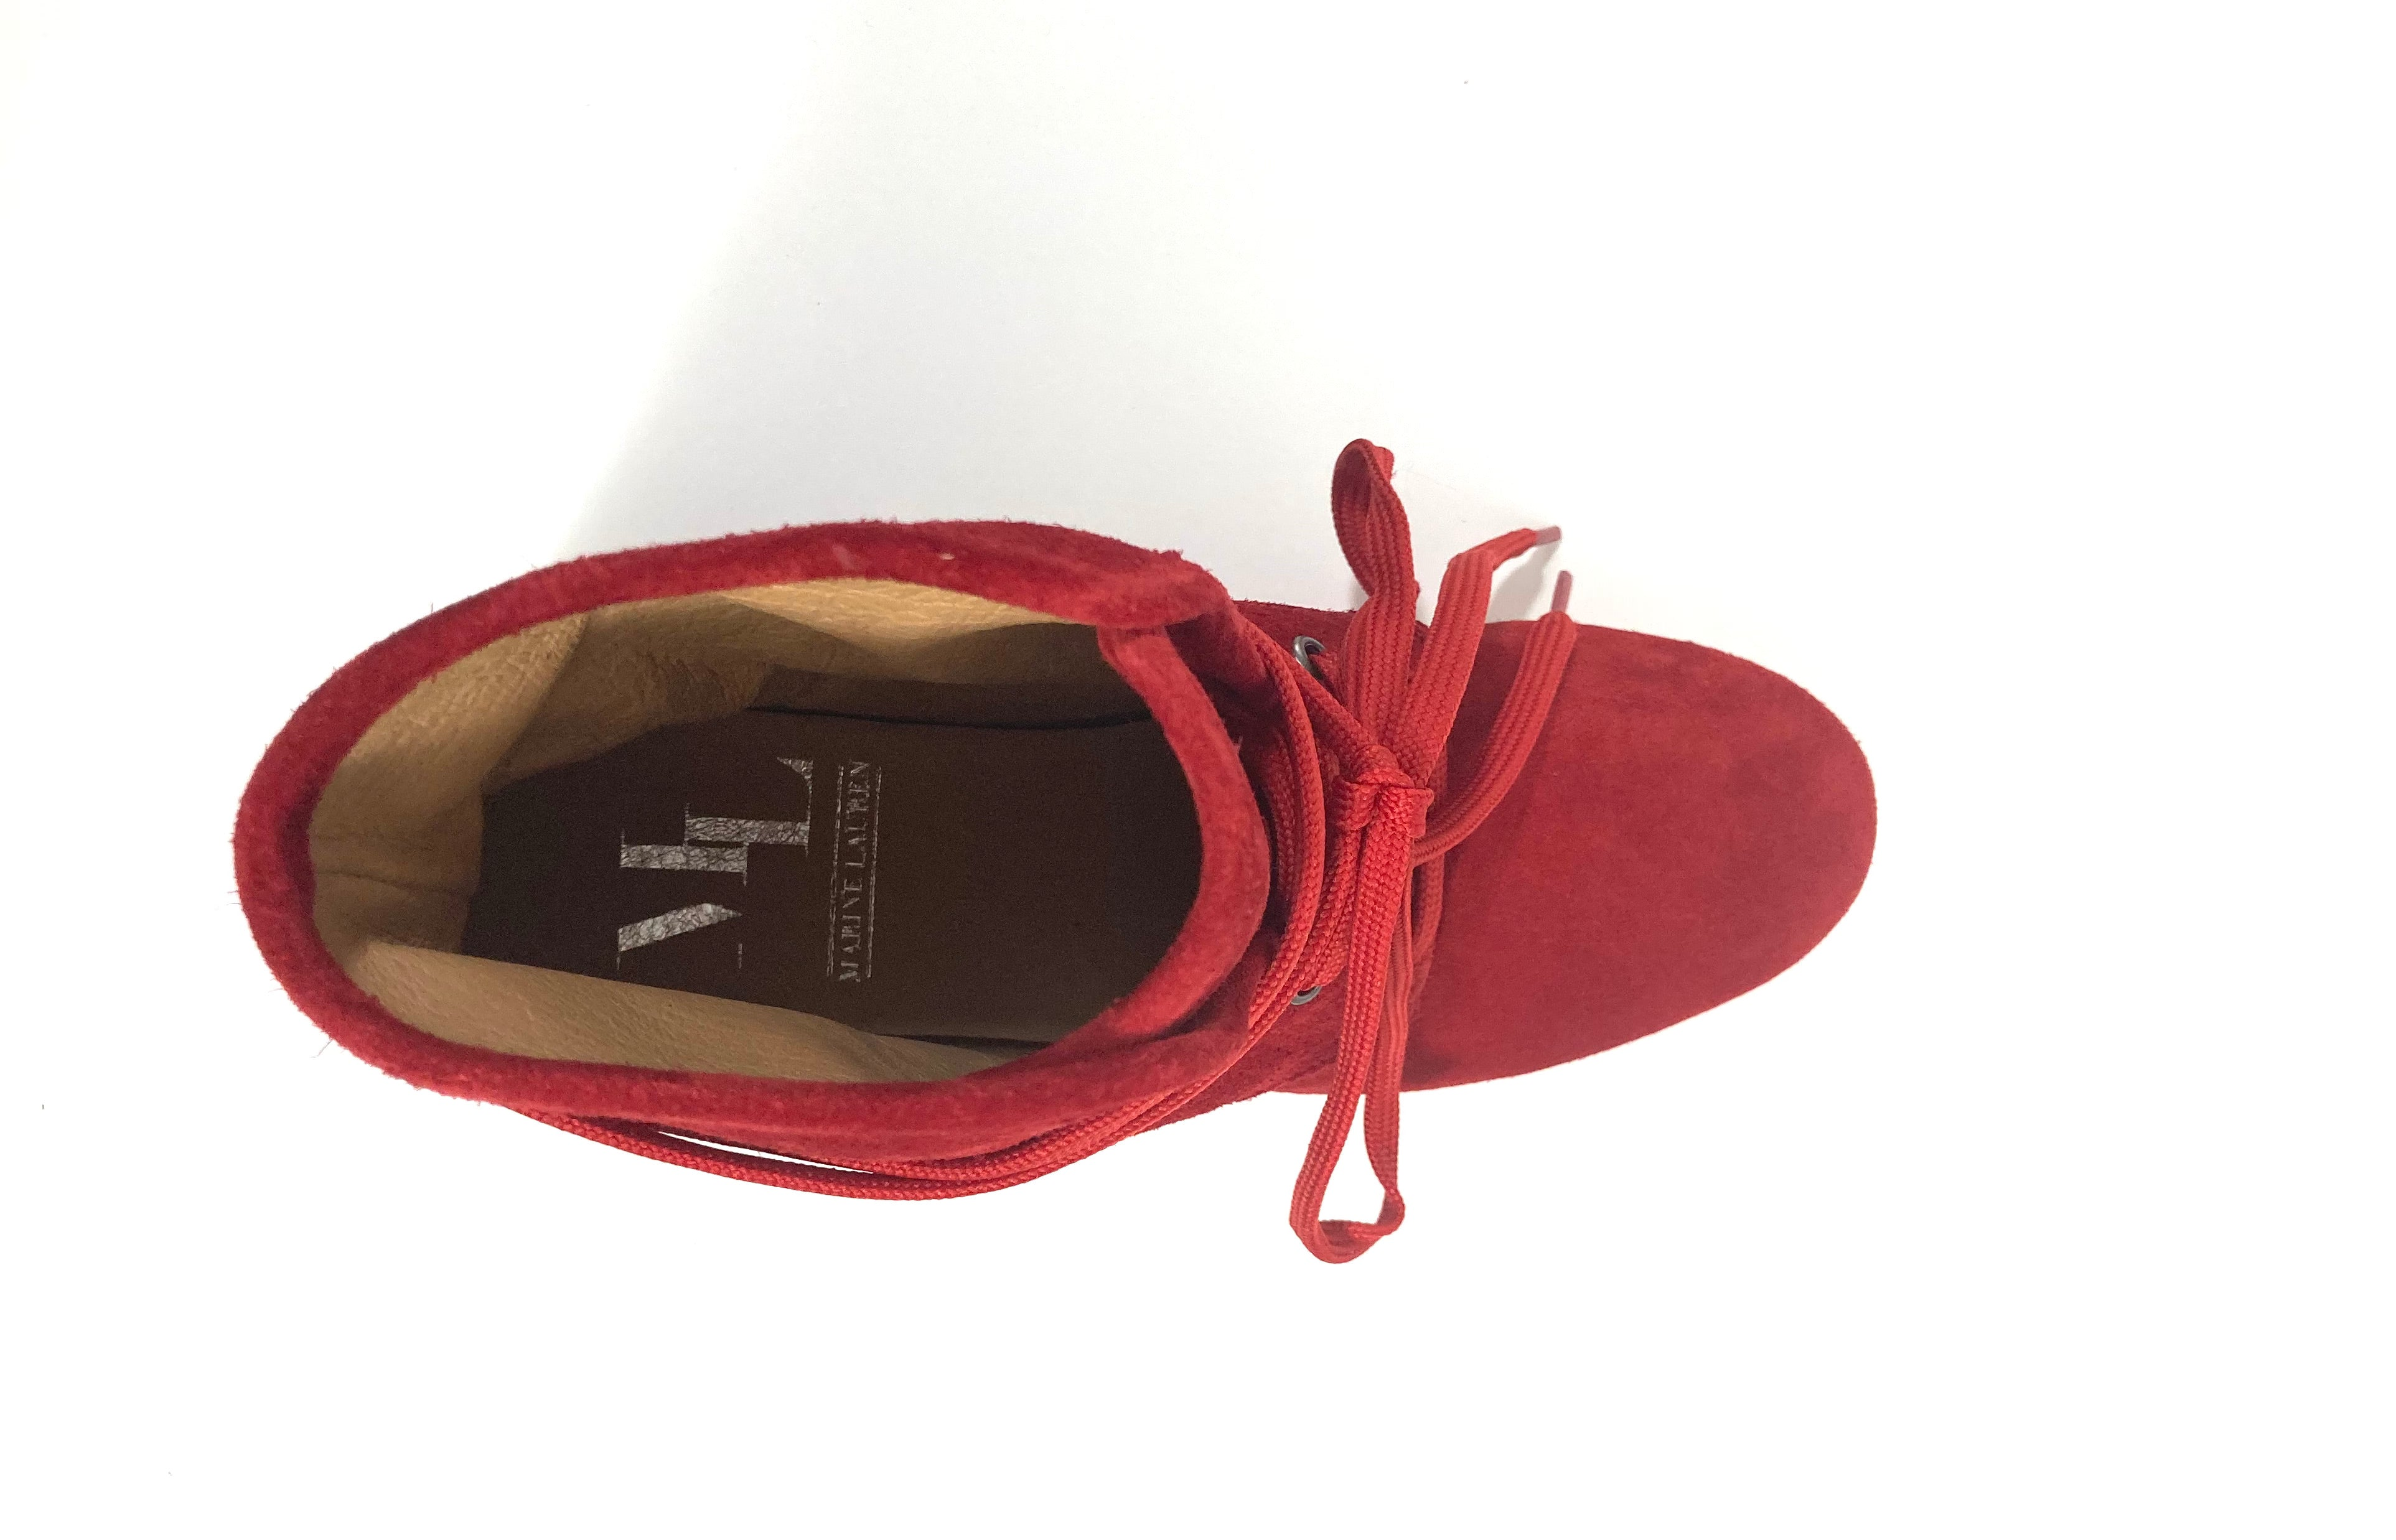 Ella lace up dance shoes red insole view